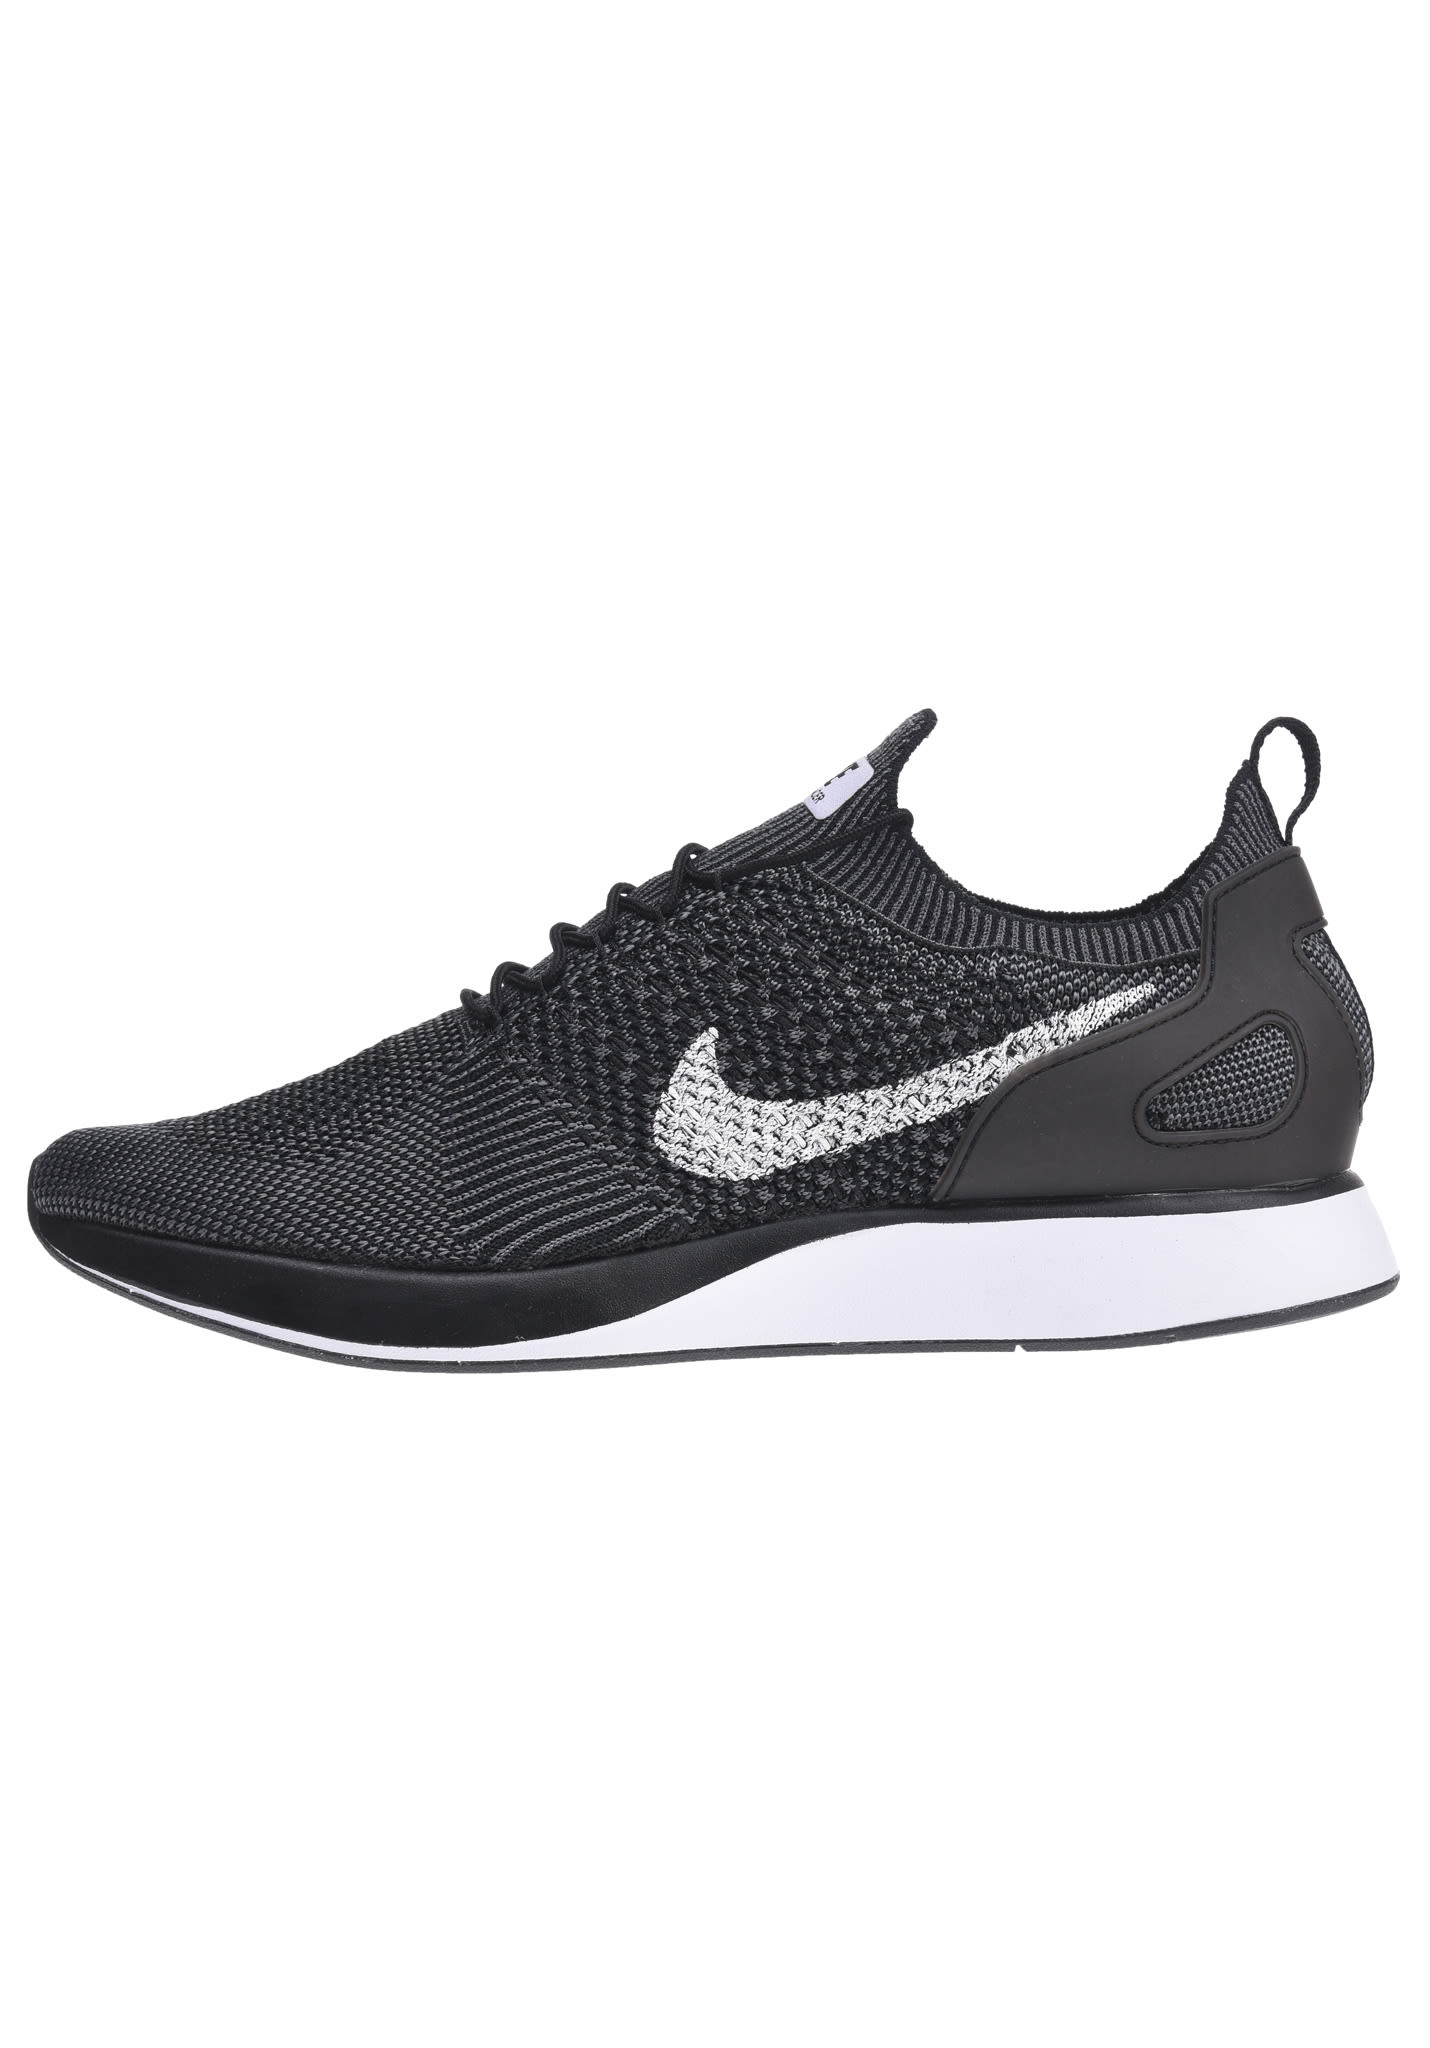 newest 79f1a 8e172 NIKE SPORTSWEAR Air Zoom Mariah Flyknit Racer - Zapatillas para Hombres -  Negro - Planet Sports